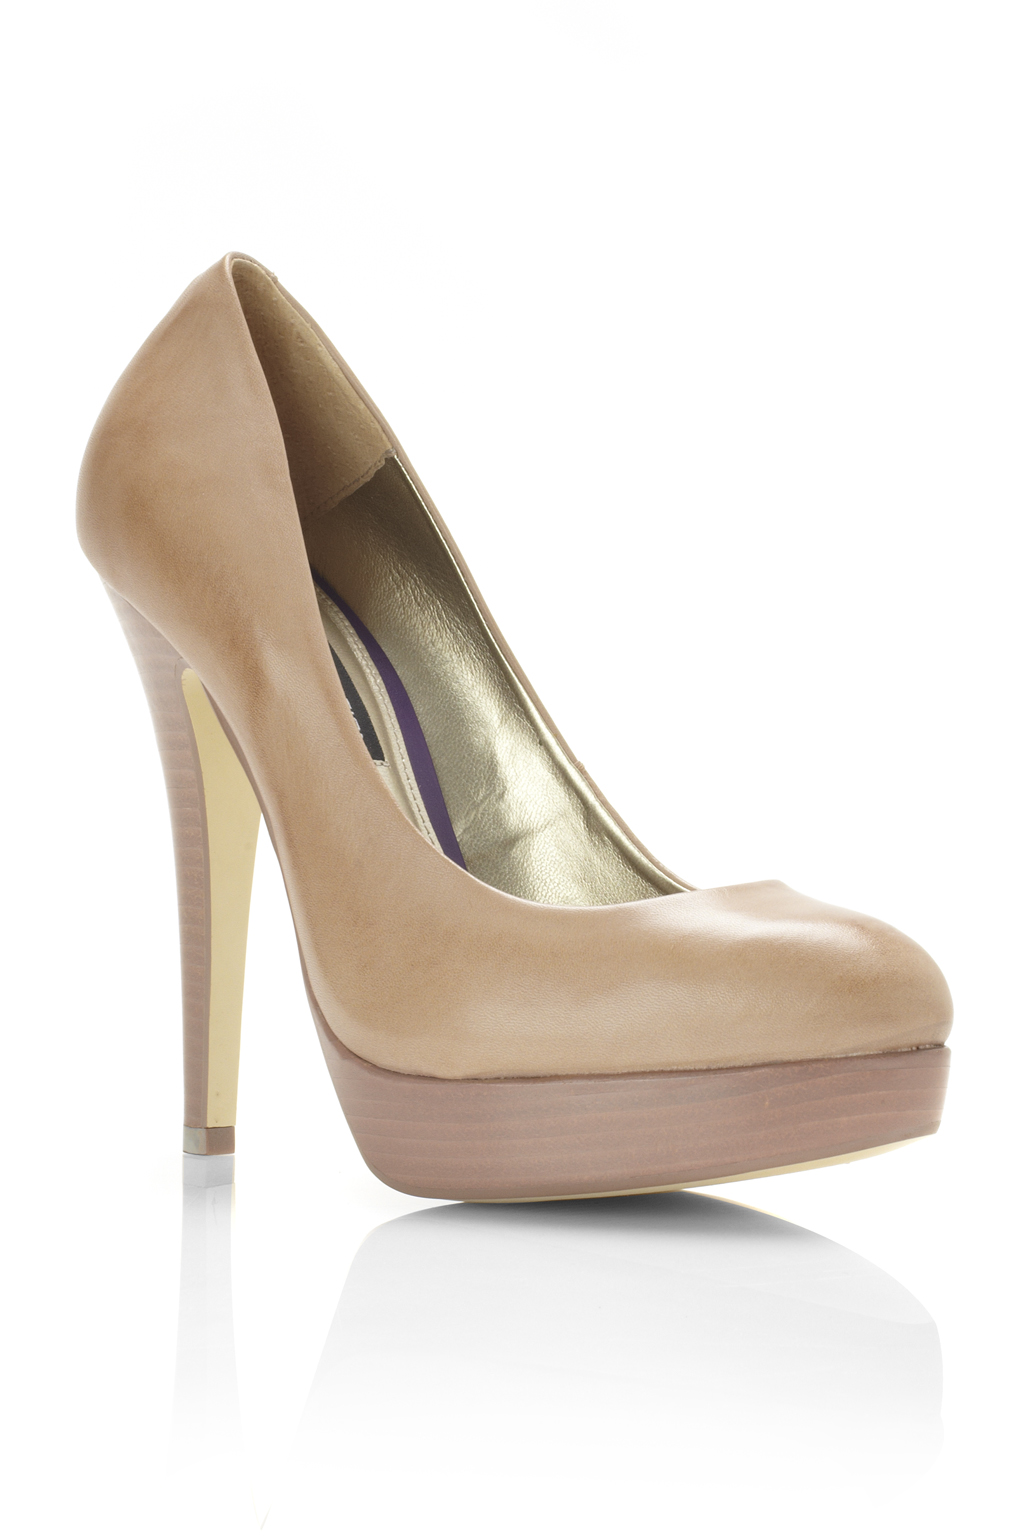 New-French-Connection-Platform-Court-Shoe-Nude